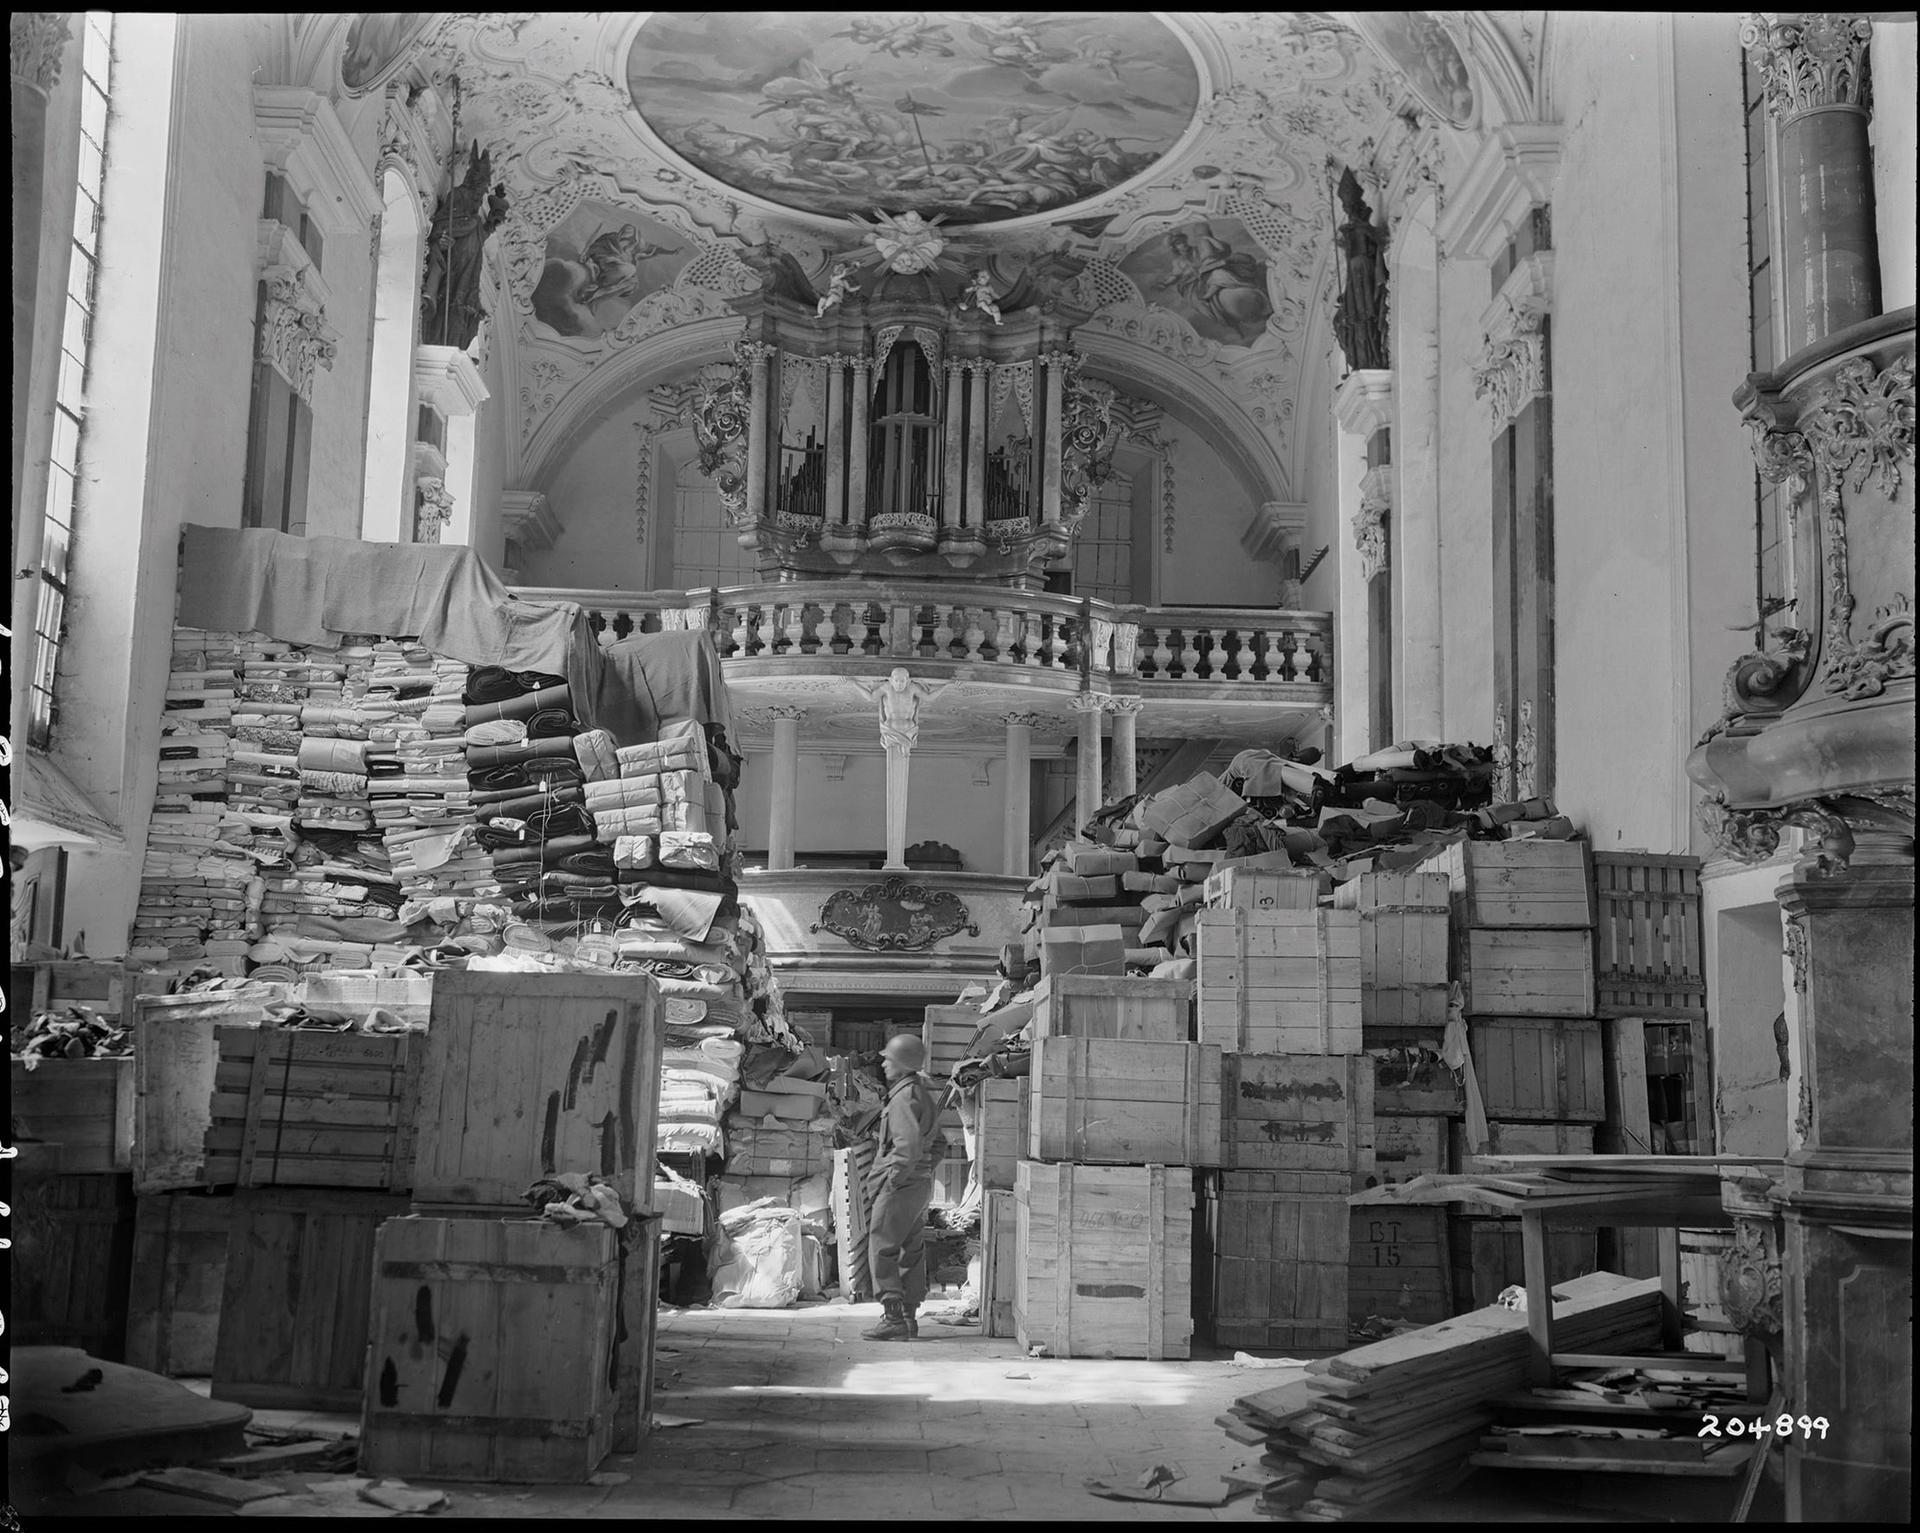 At the end of the Second World War, Nazi loot was found in various locations, such as this church near Nuremberg National Archives and Records Administration